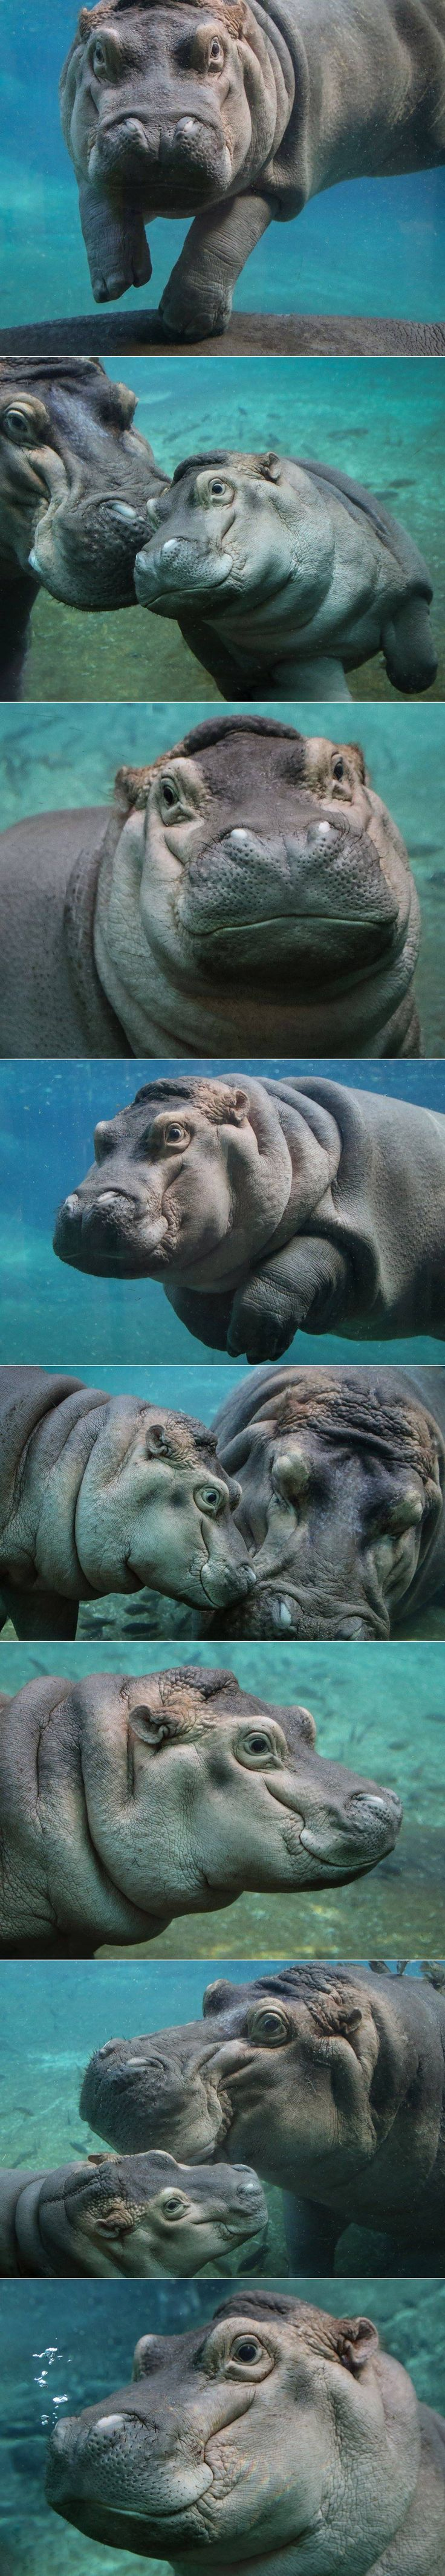 Happy hippos at the San Diego Zoo <3 photos by Penny Hyde #coupon code nicesup123 gets 25% off at  www.Provestra.com www.Skinception.com and www.leadingedgehealth.com